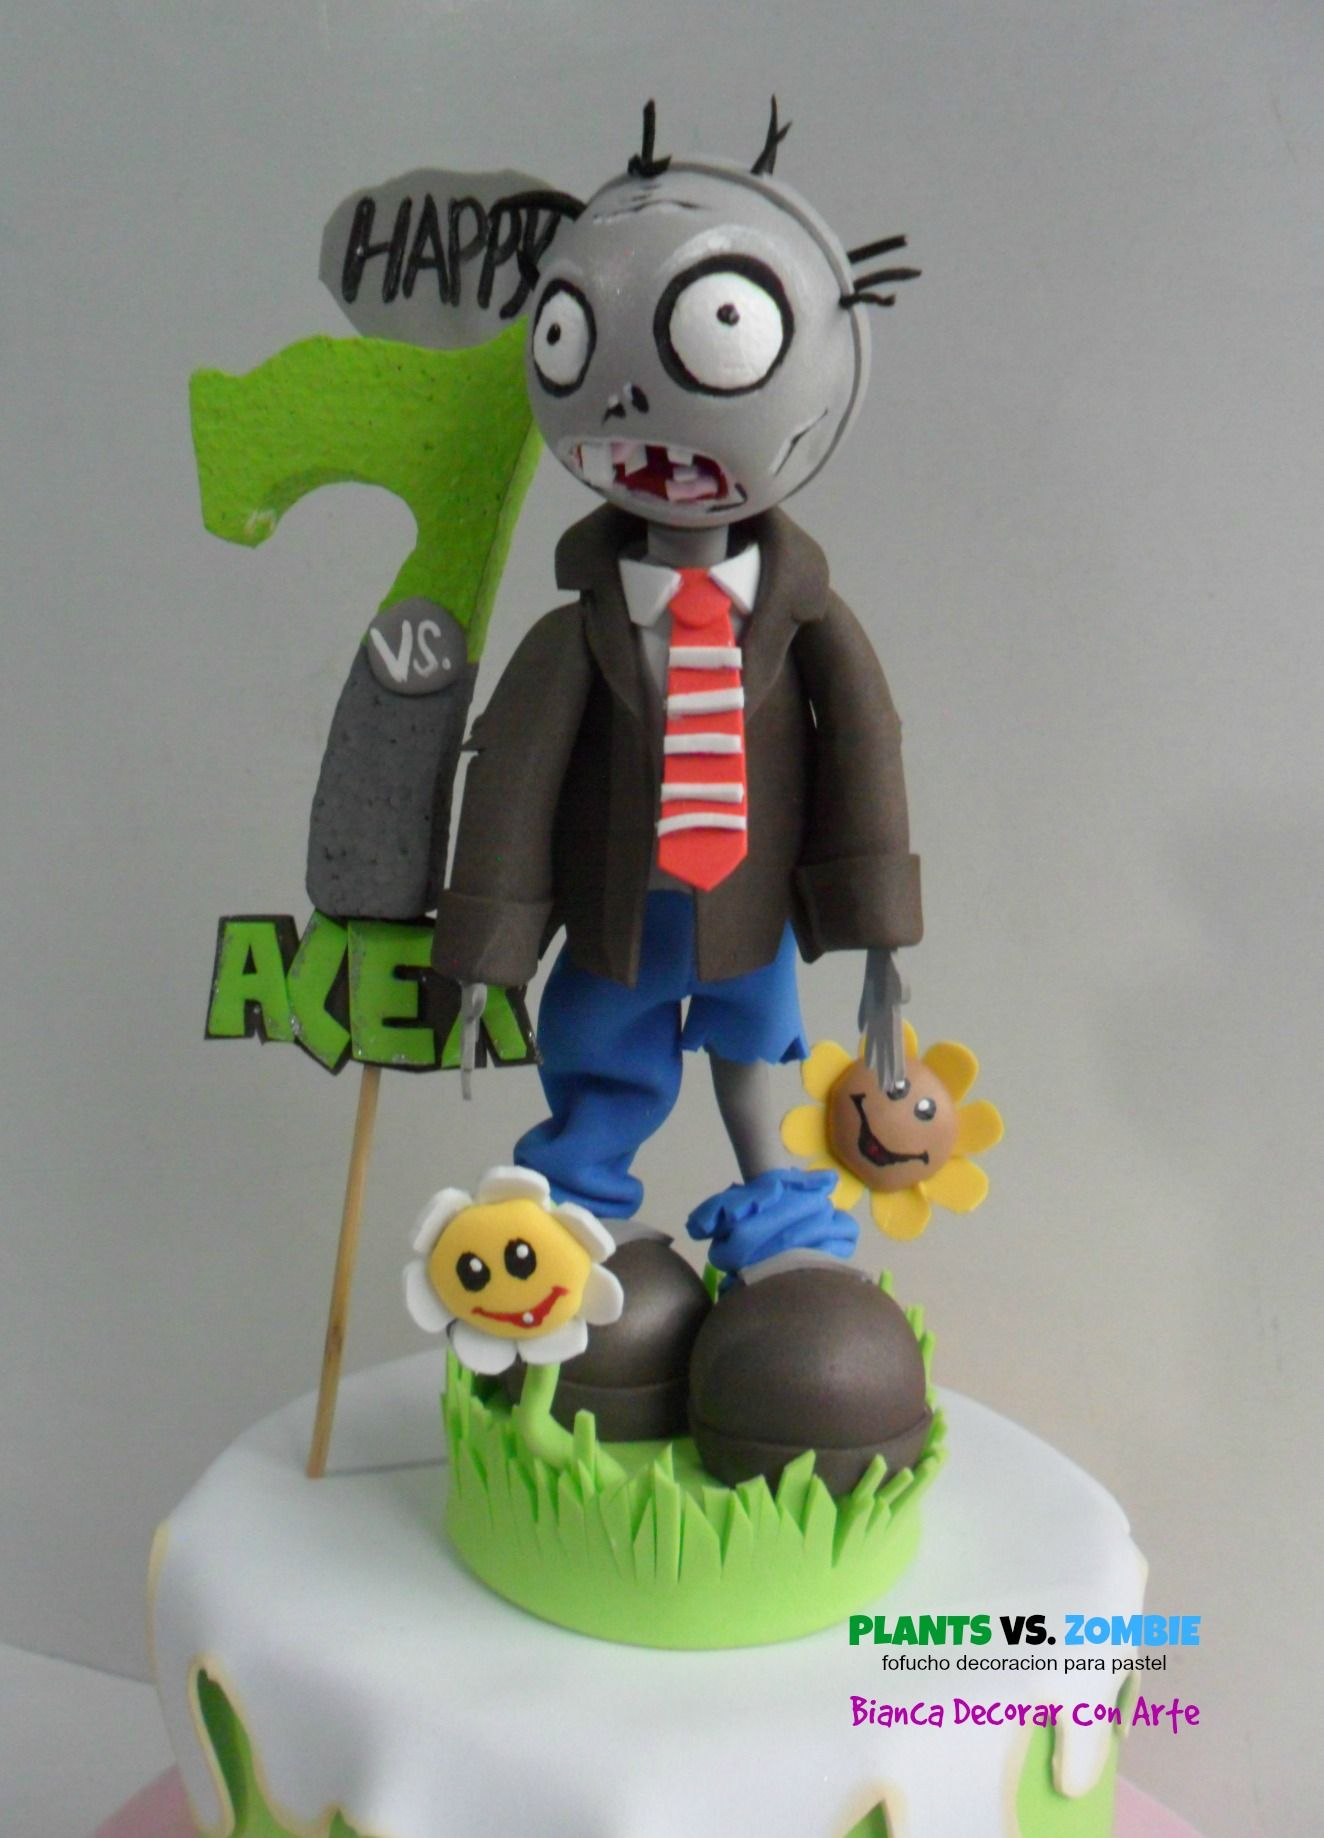 Fofucho plants vs zombie decoraci n de pastel dimensiones for Decoracion con globos plantas contra zombies